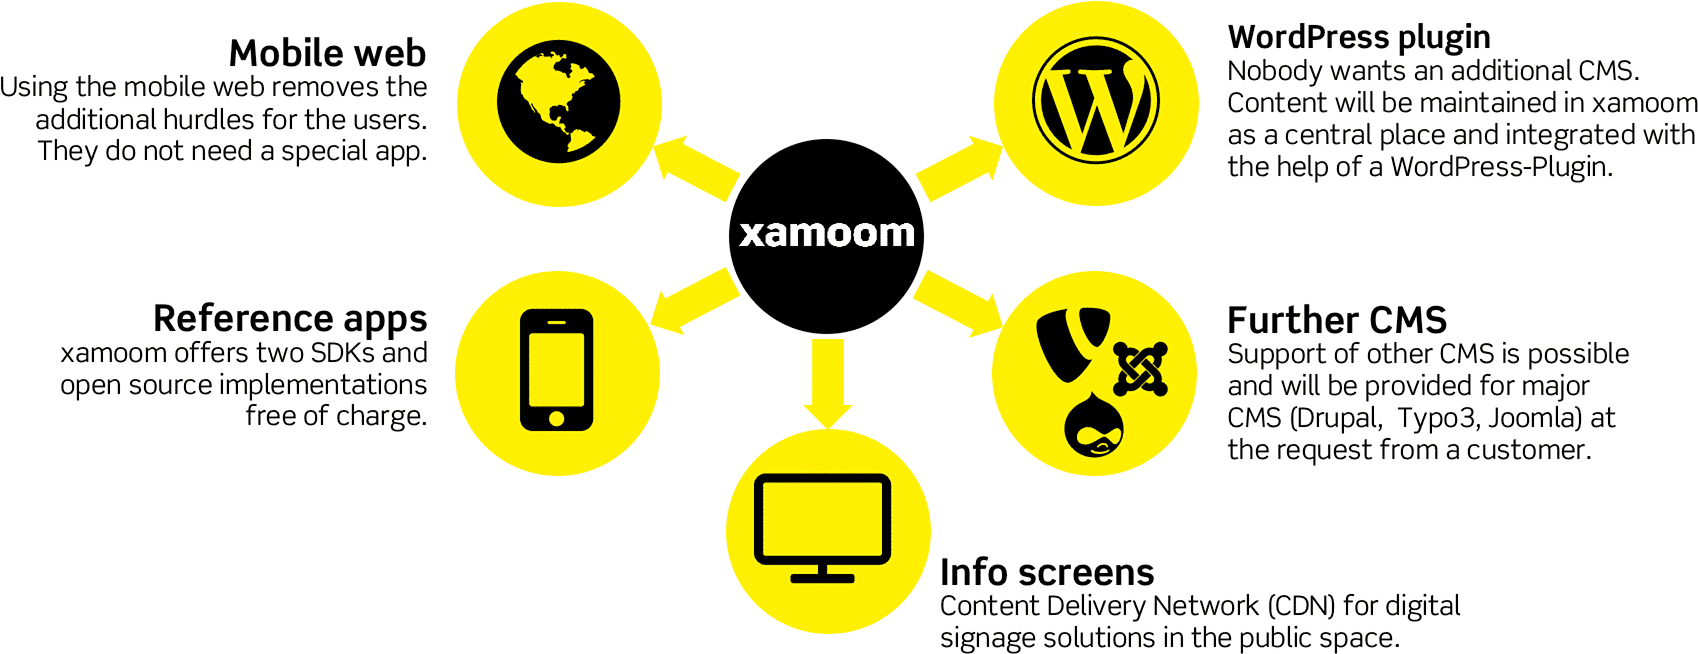 xamoom: One CMS for all screens